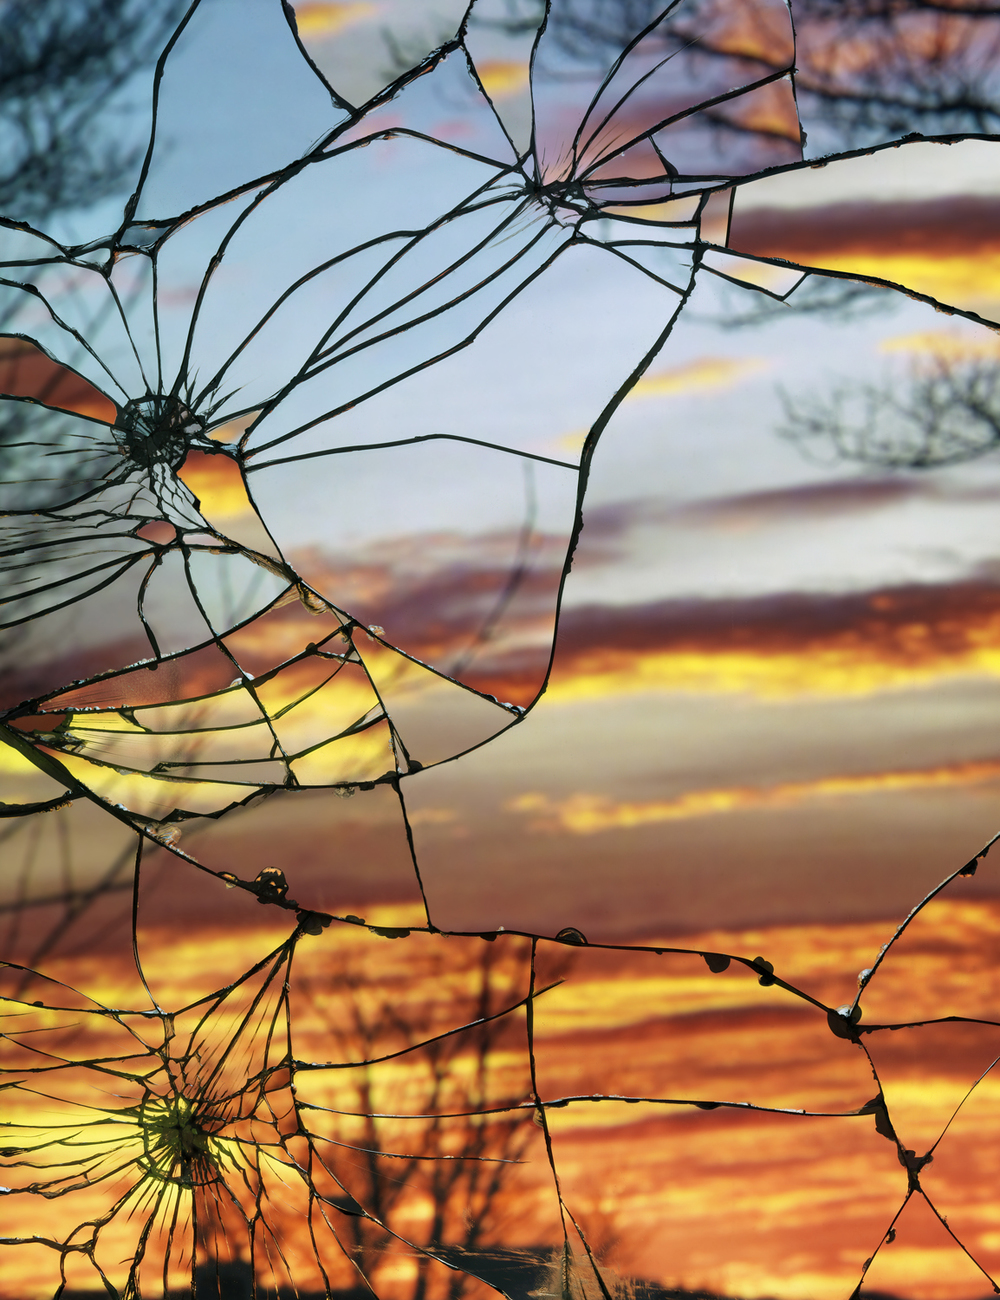 broken-mirror_evening-sky-anscochrome2